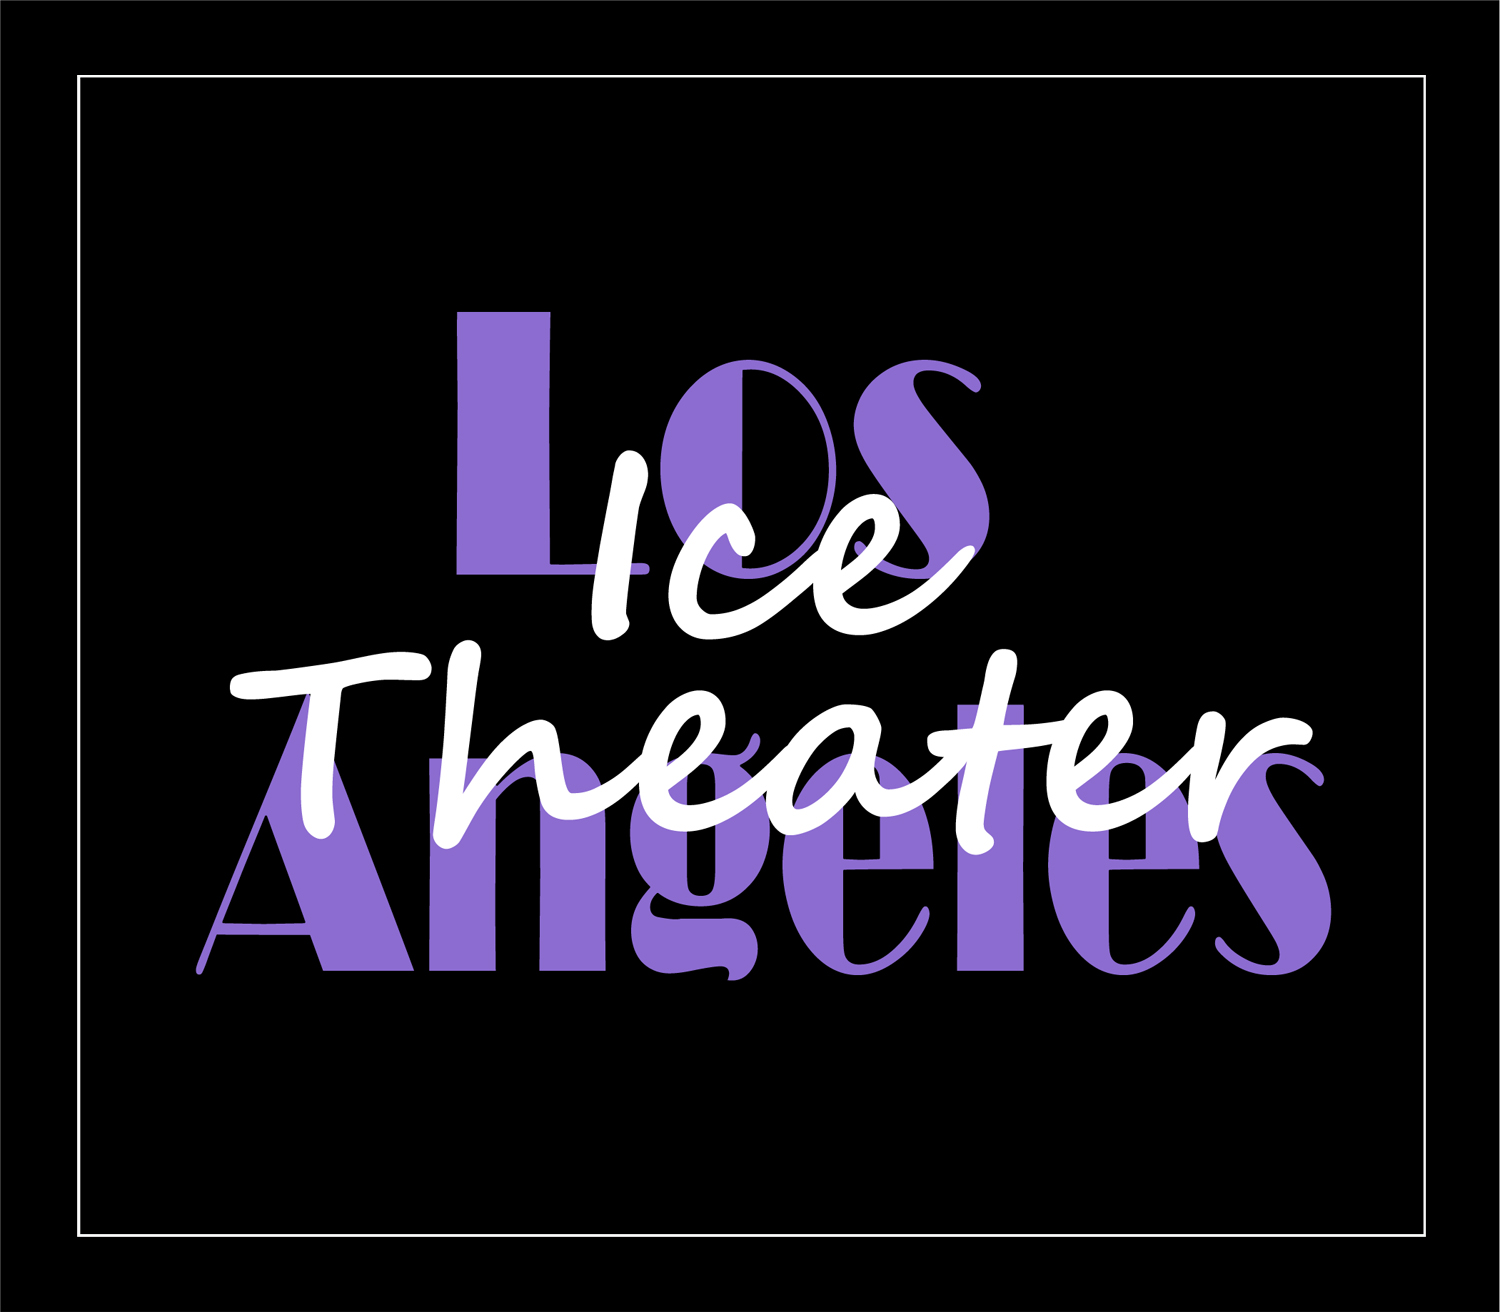 LOS ANGELES ICE THEATER